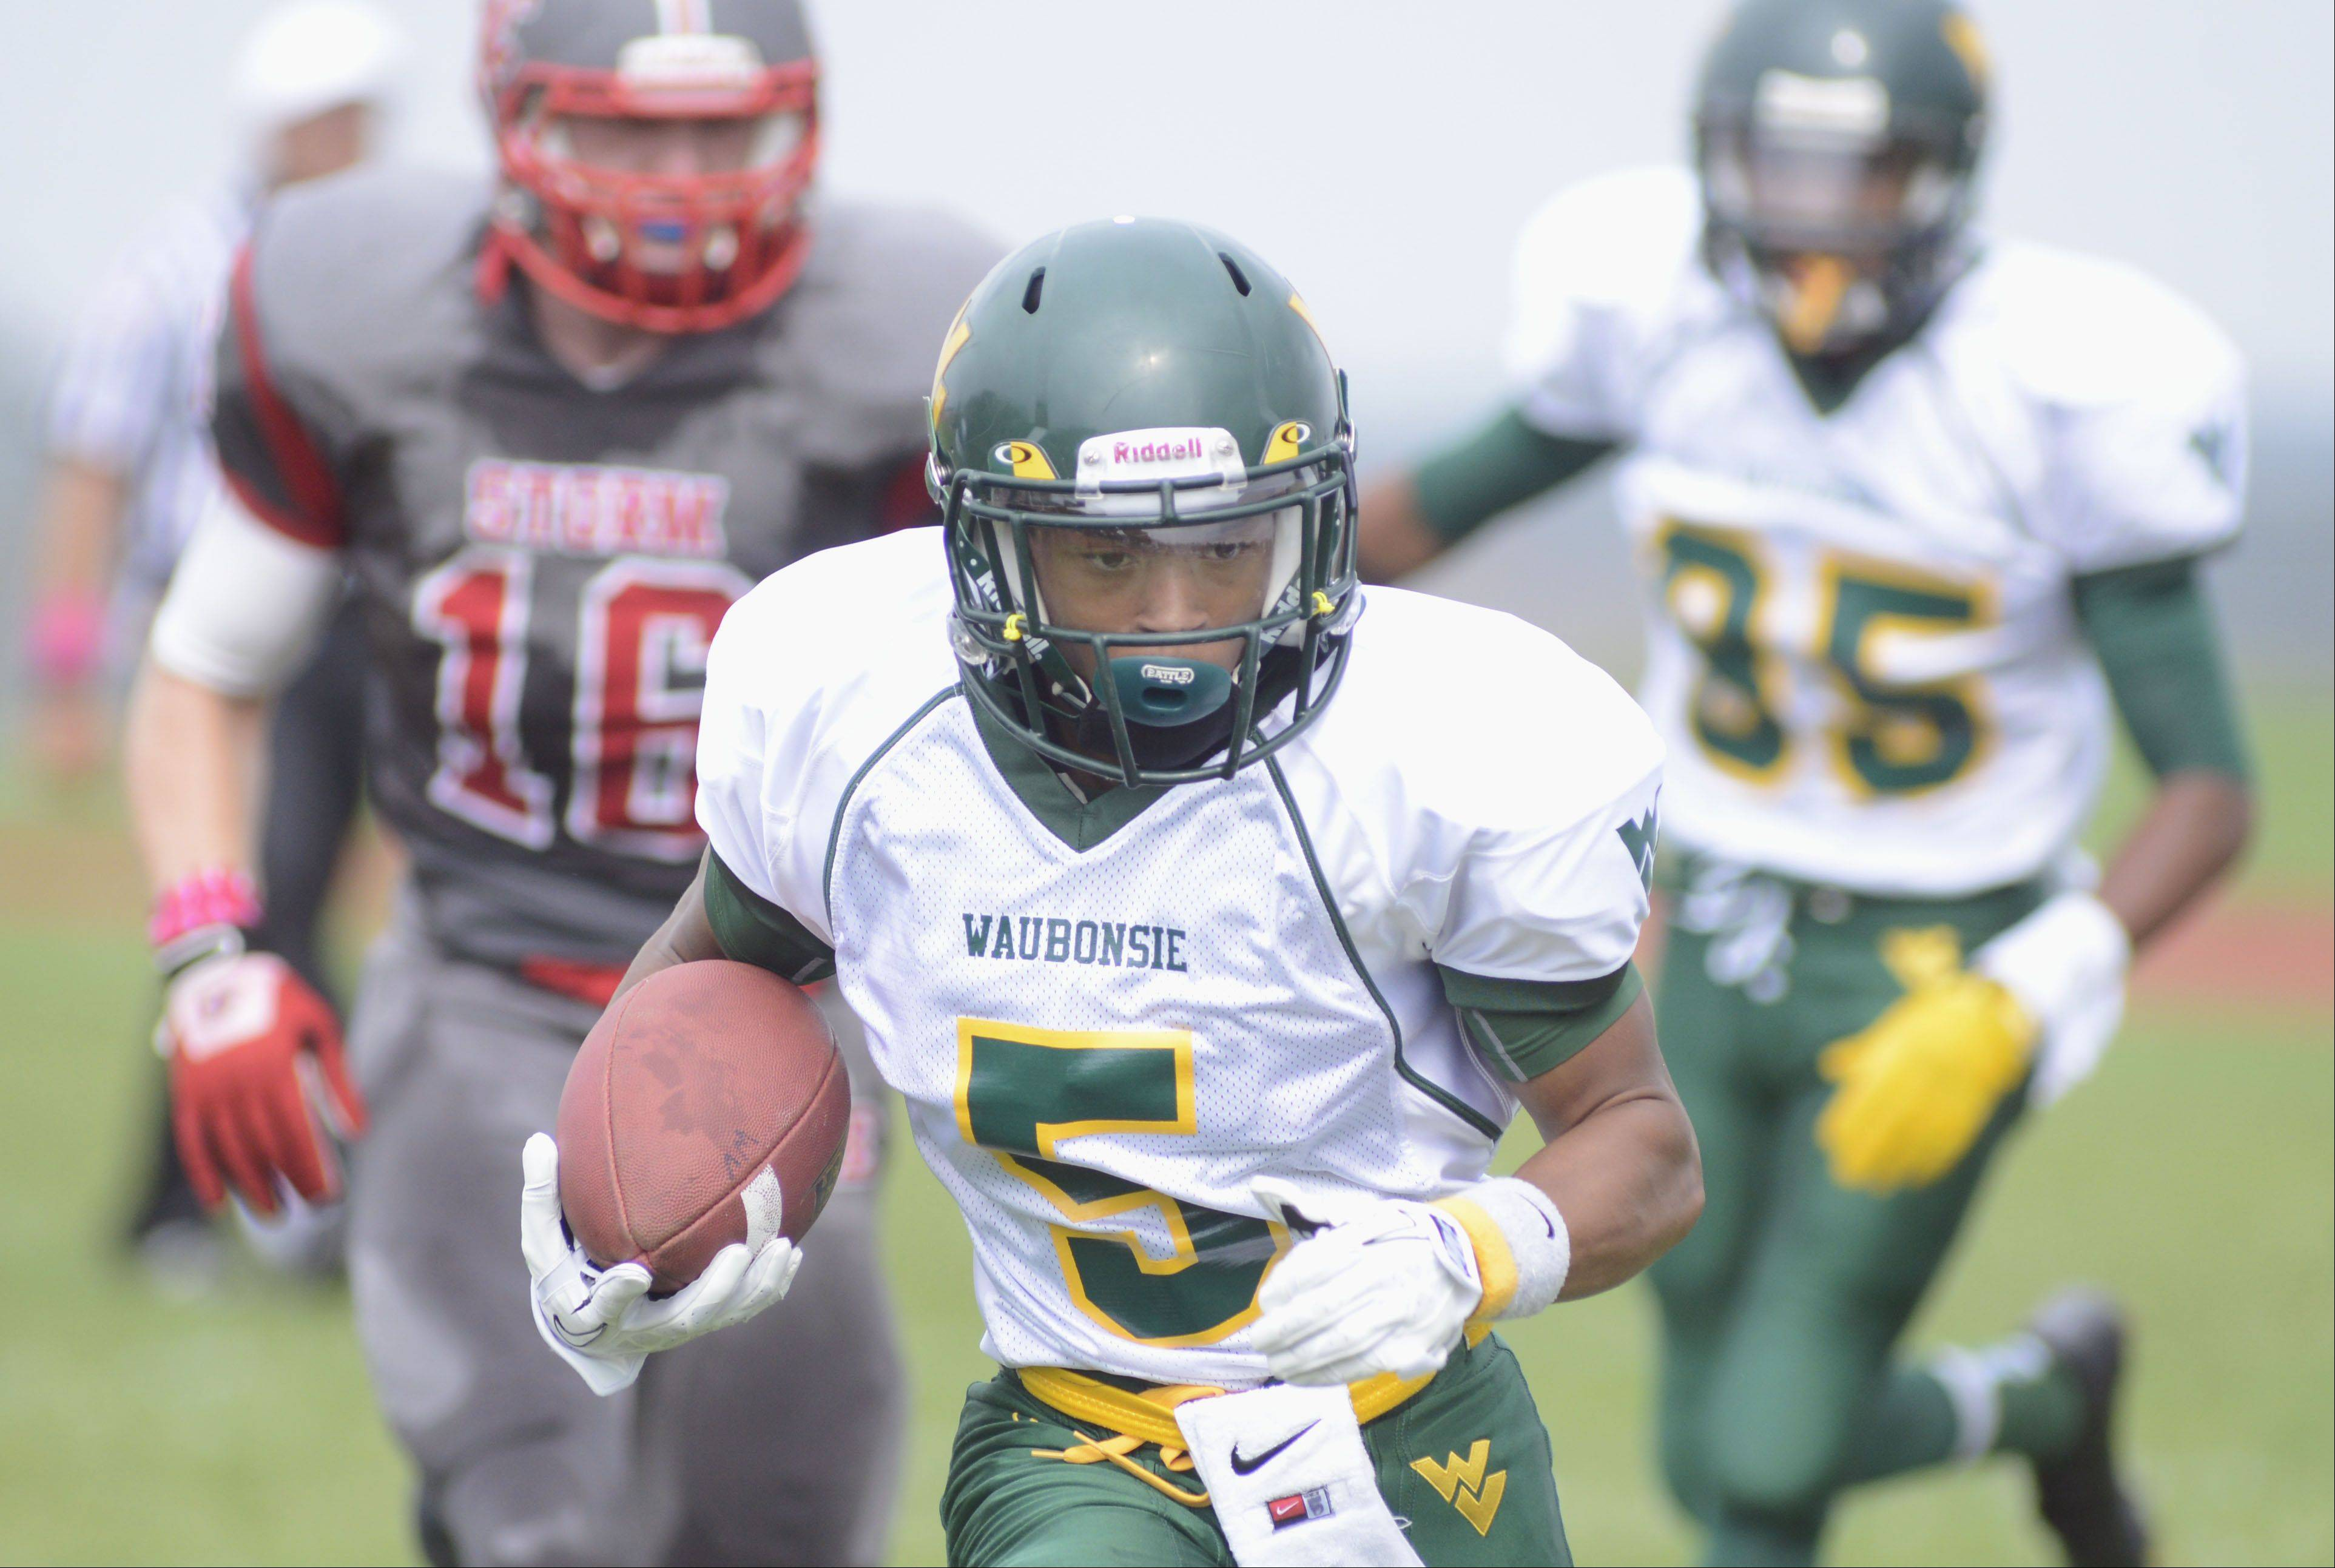 Images: Waubonsie Valley vs. South Elgin football